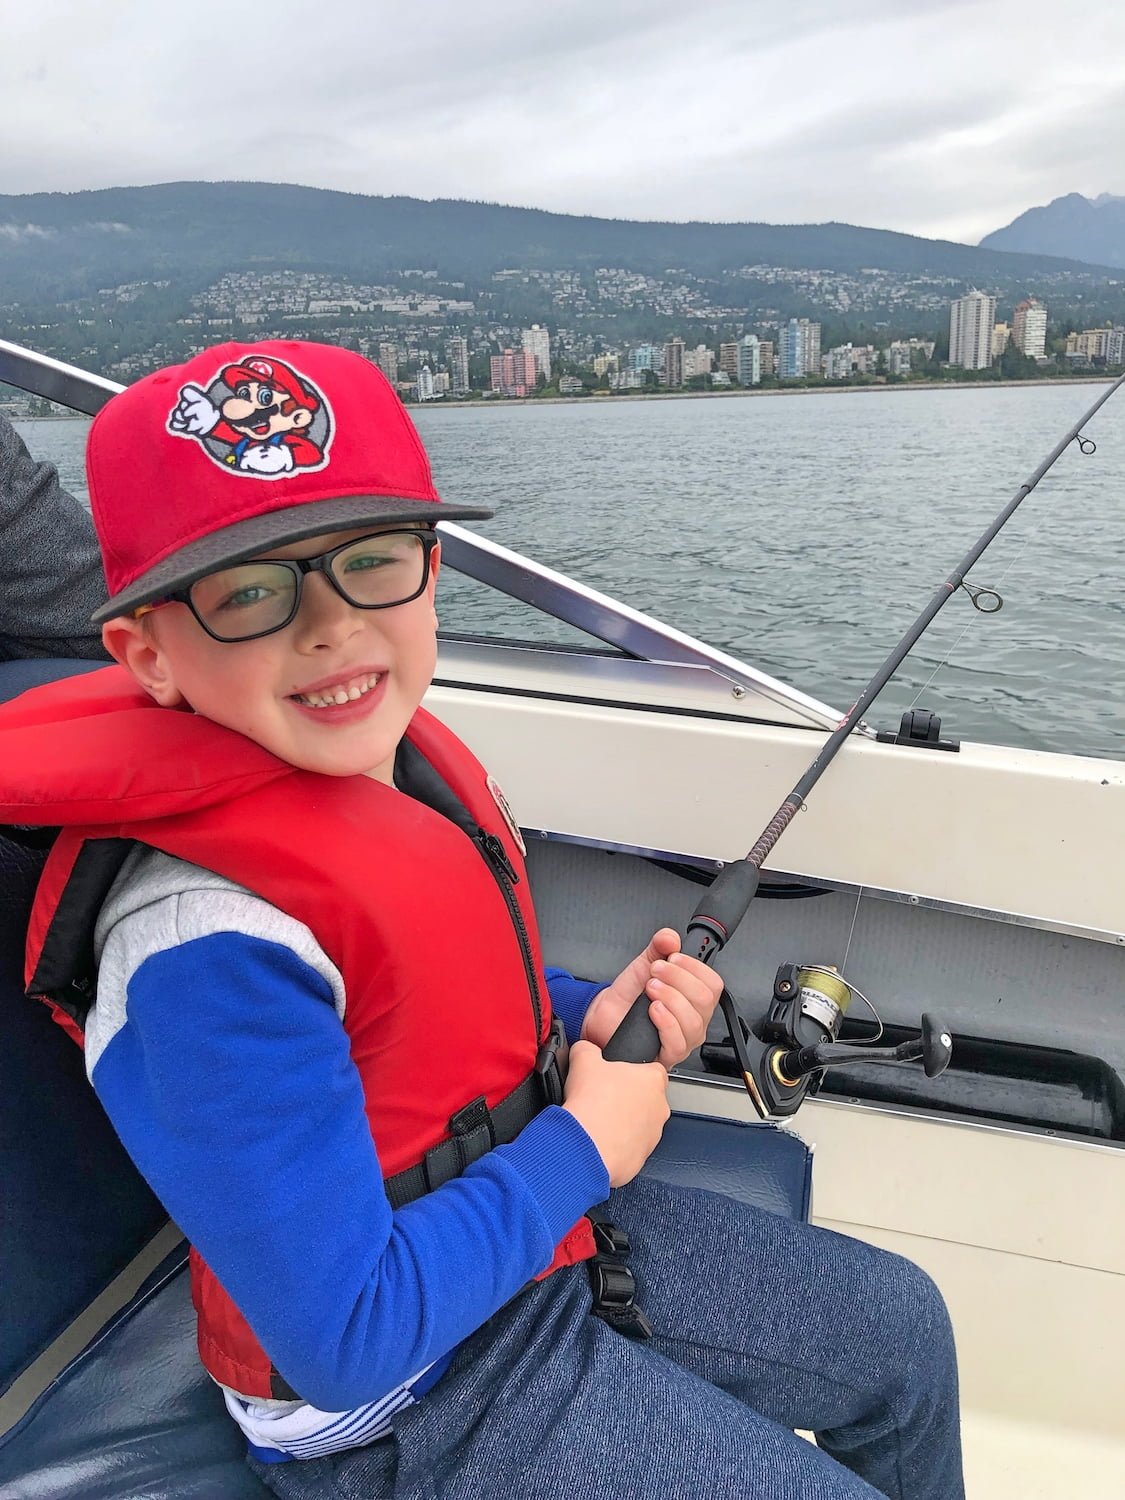 Five Year Old Fishing on Ocean